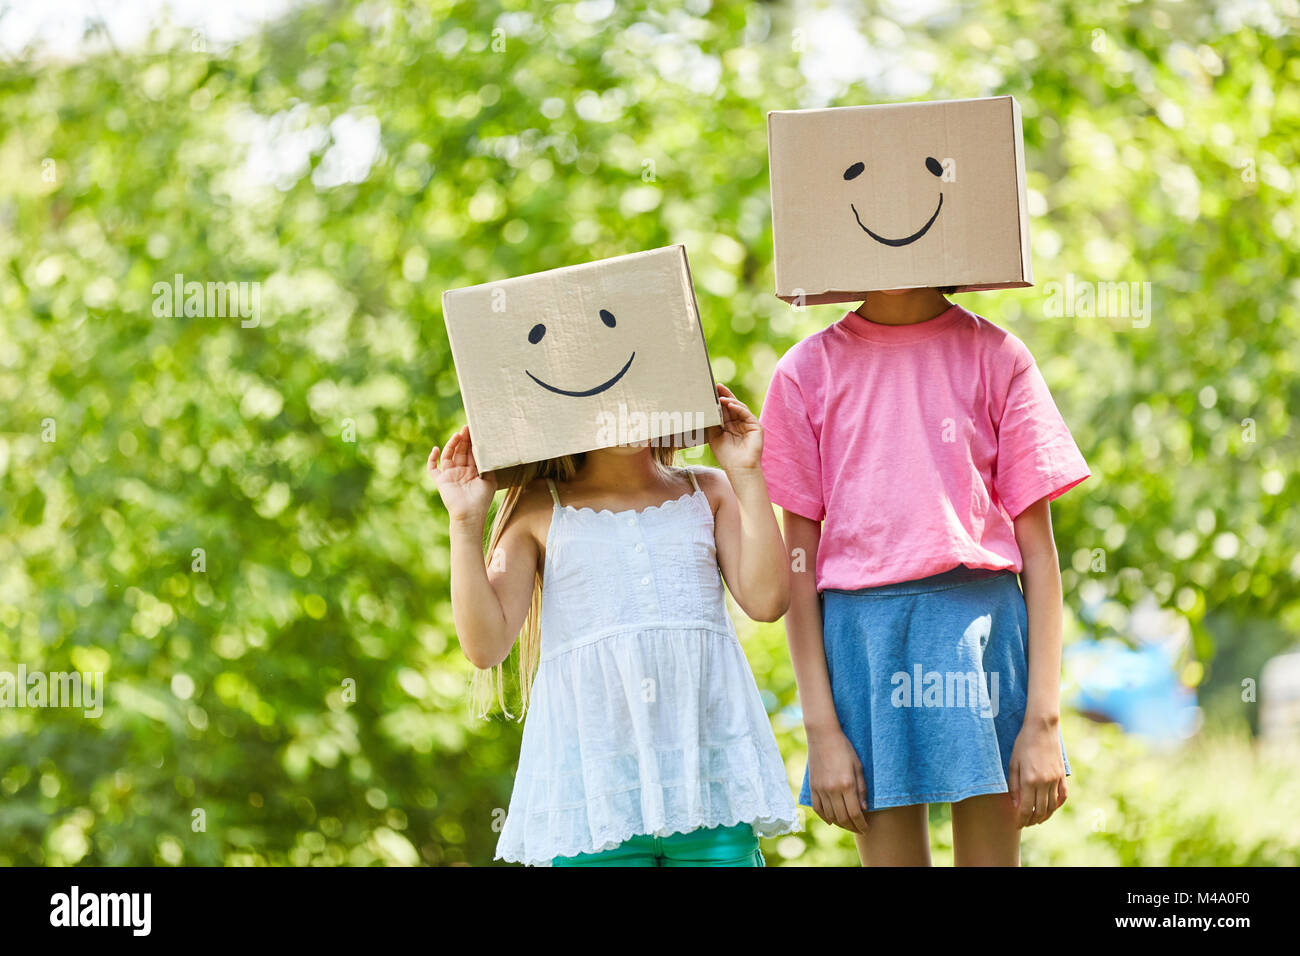 Two children hide their faces under funny painted cardboard boxes - Stock Image